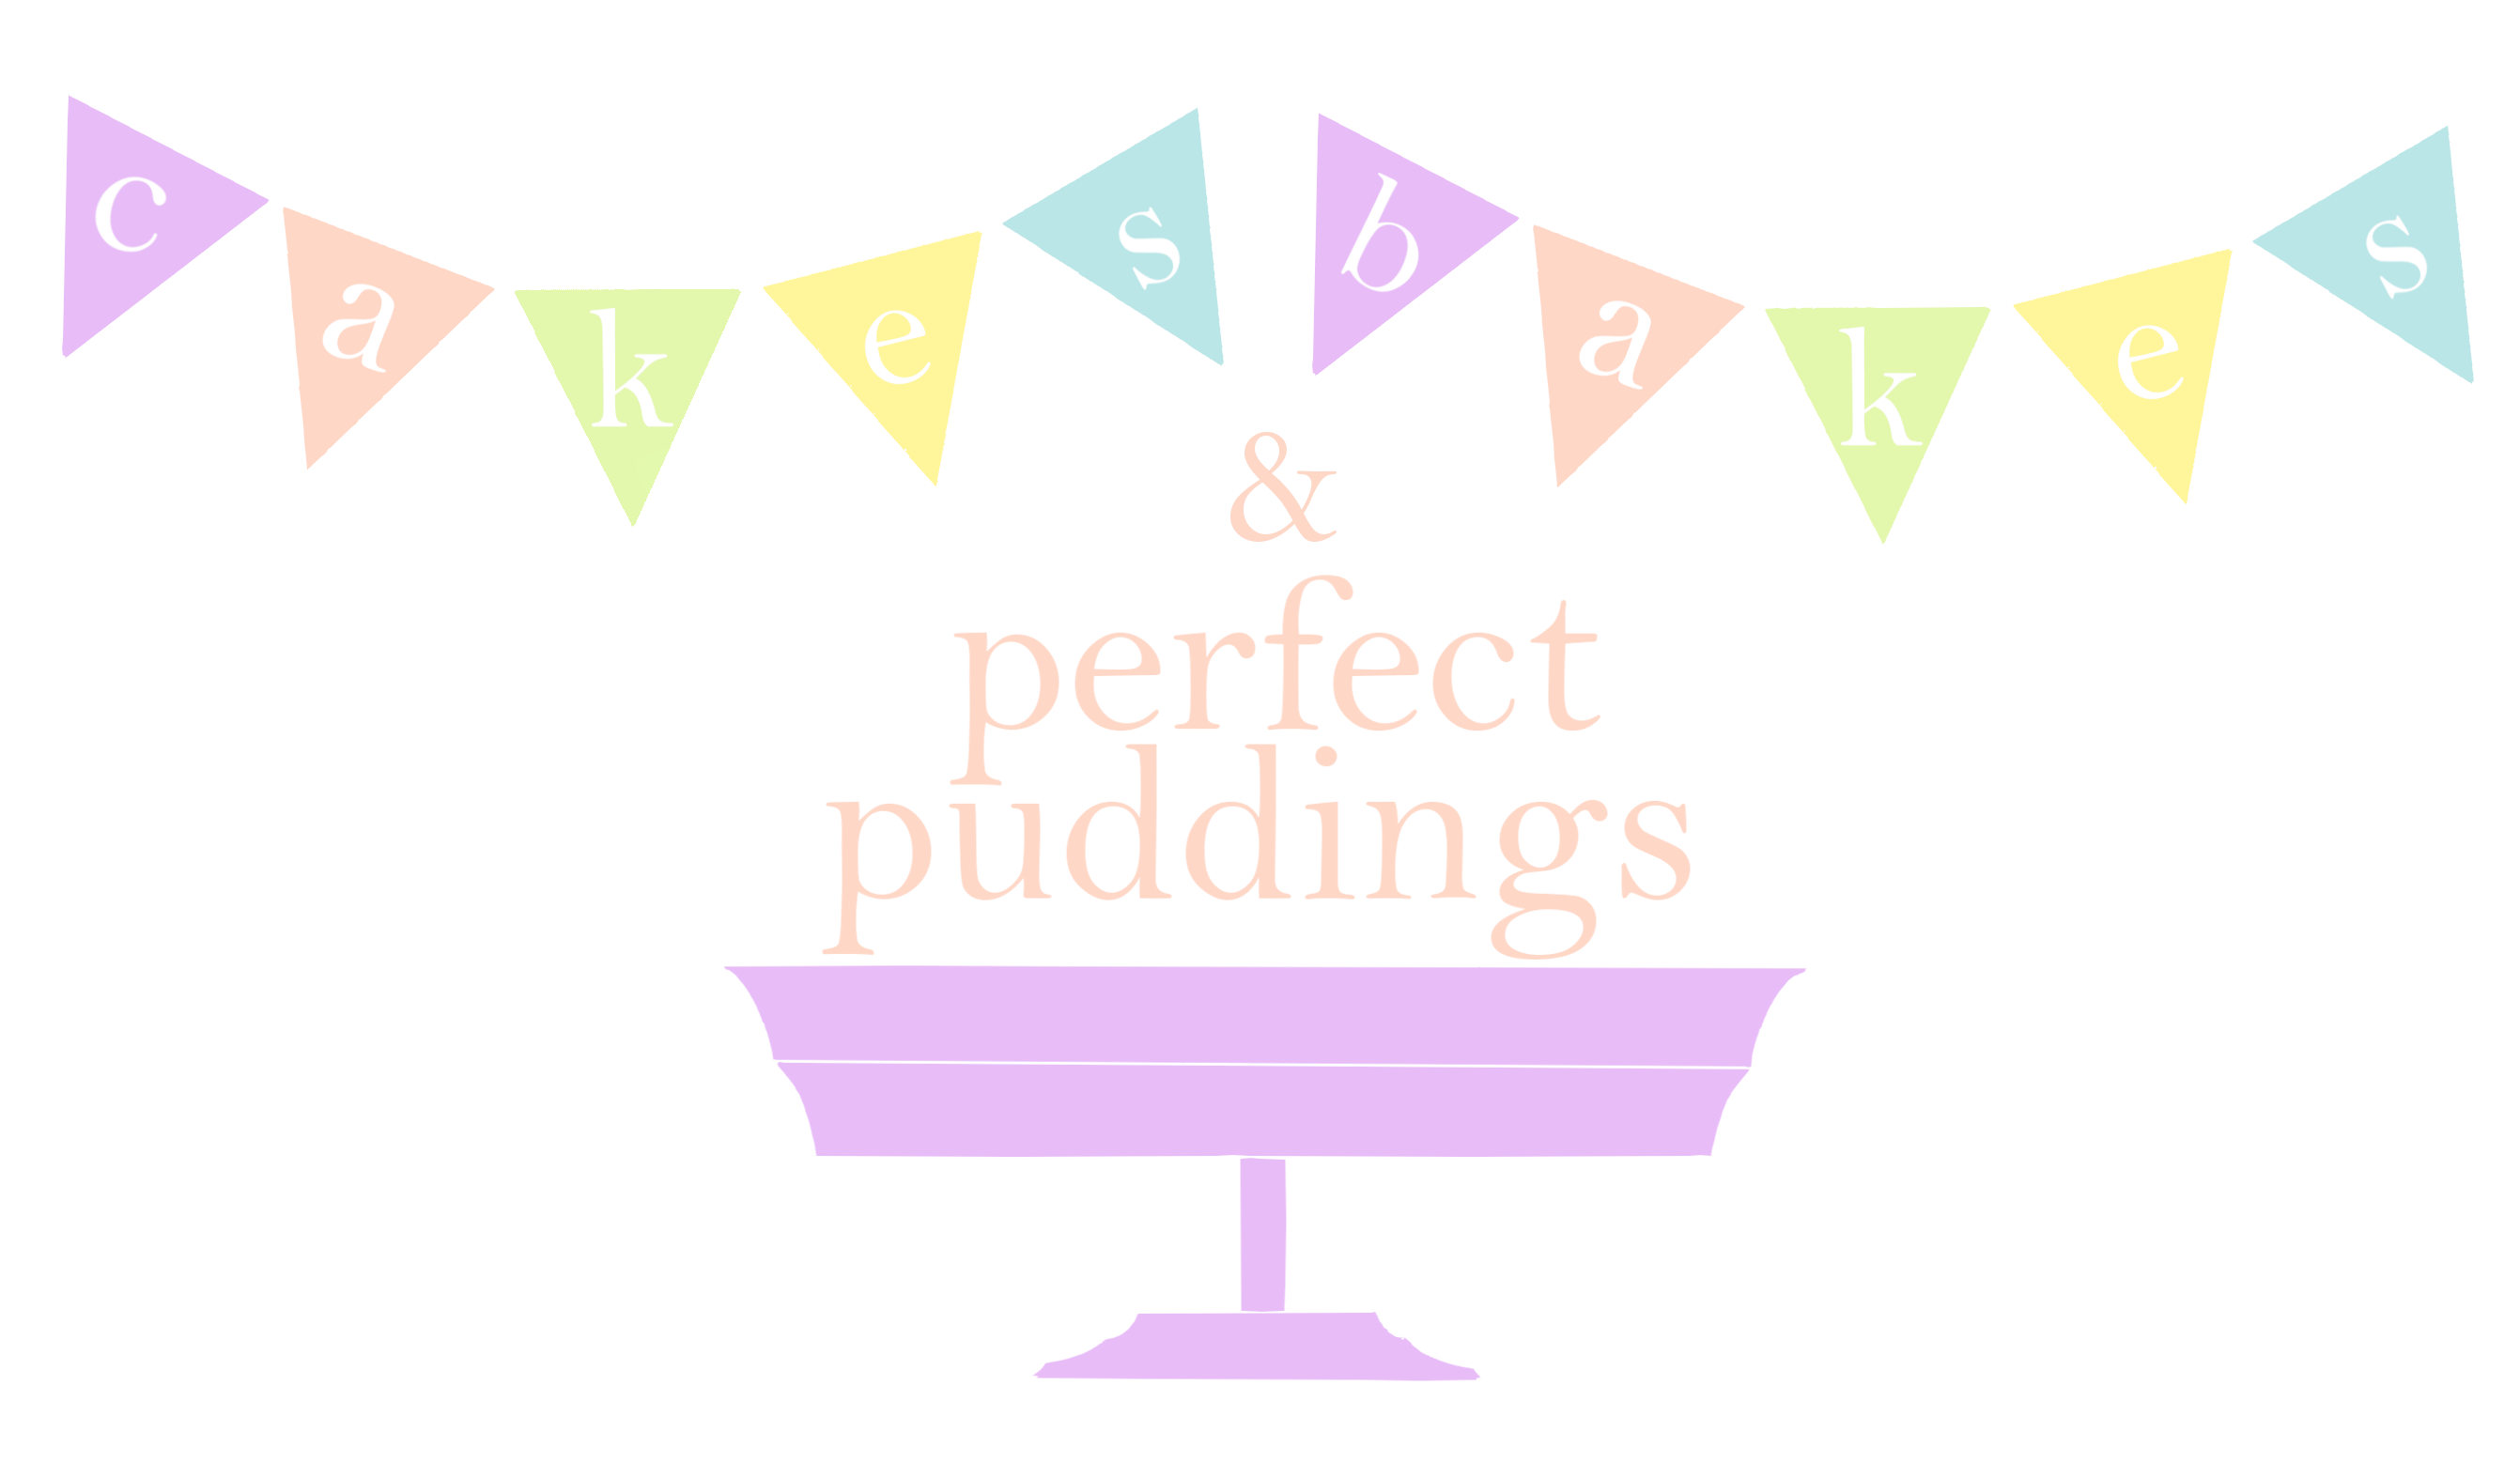 Cakes, Bakes and Perfect Puddings